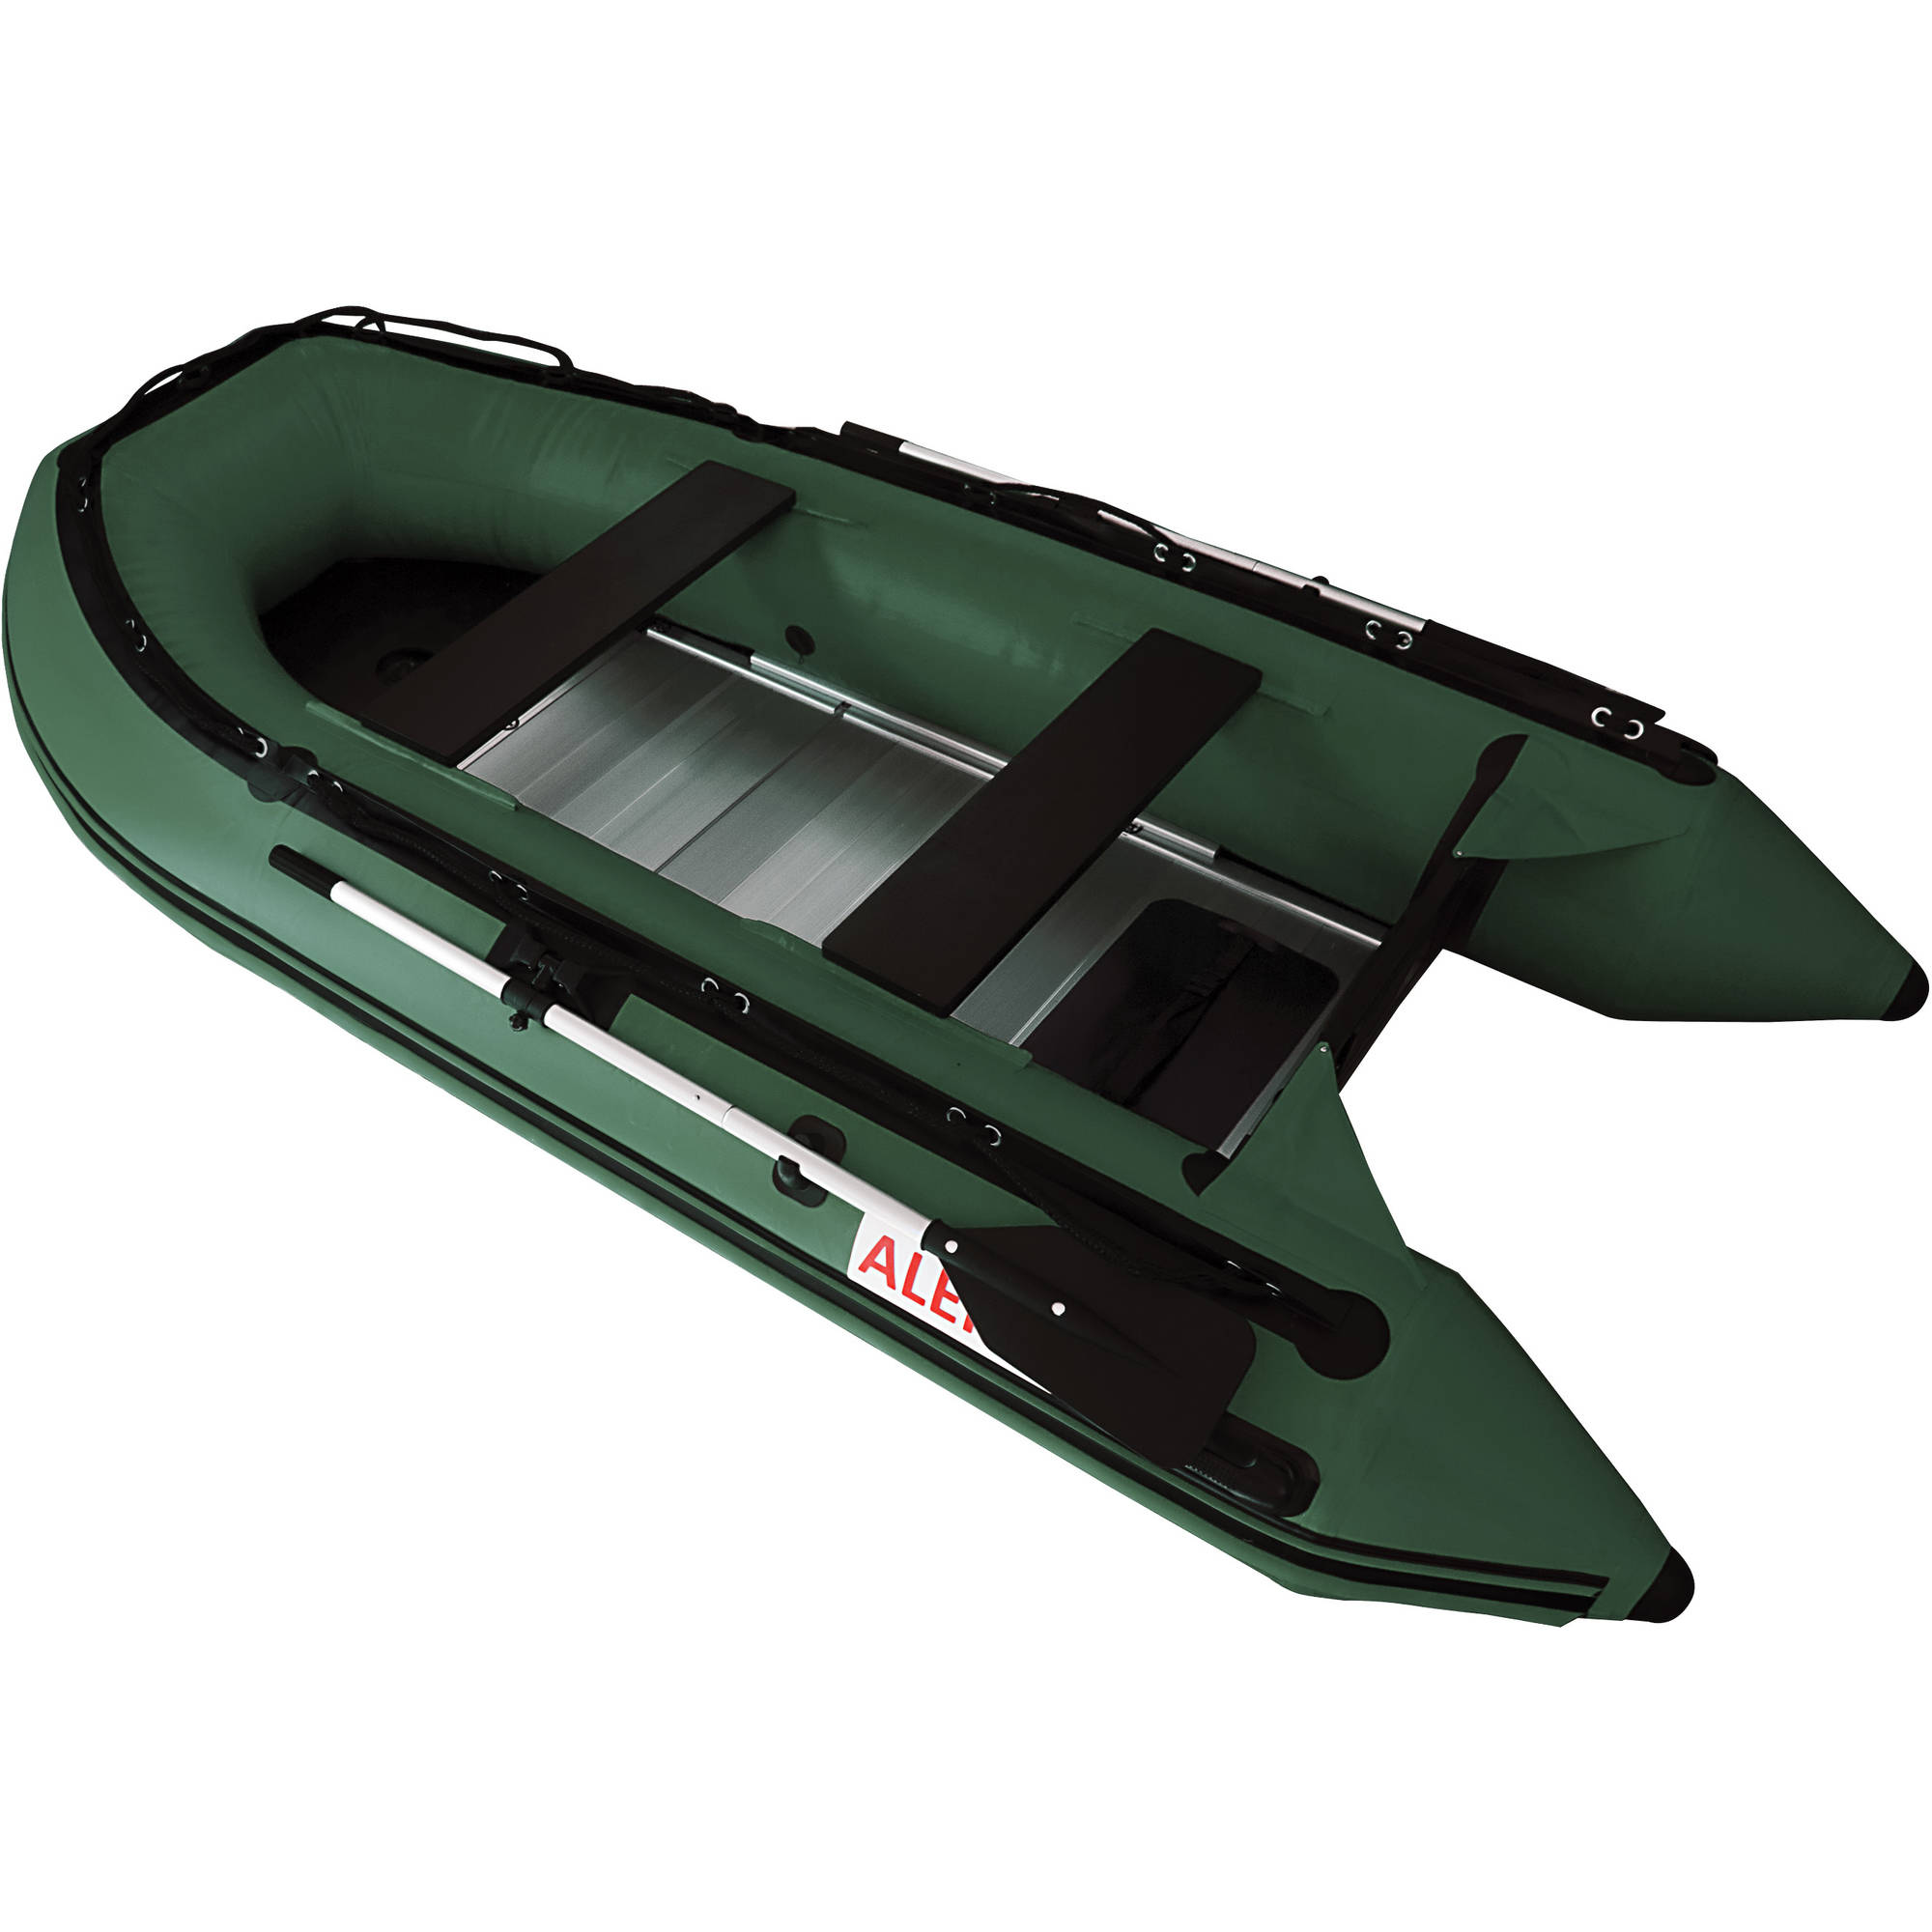 ALEKO BT320GR Inflatable 4-Person Fishing Boat with Aluminum Floor, 10.5' by ALEKO